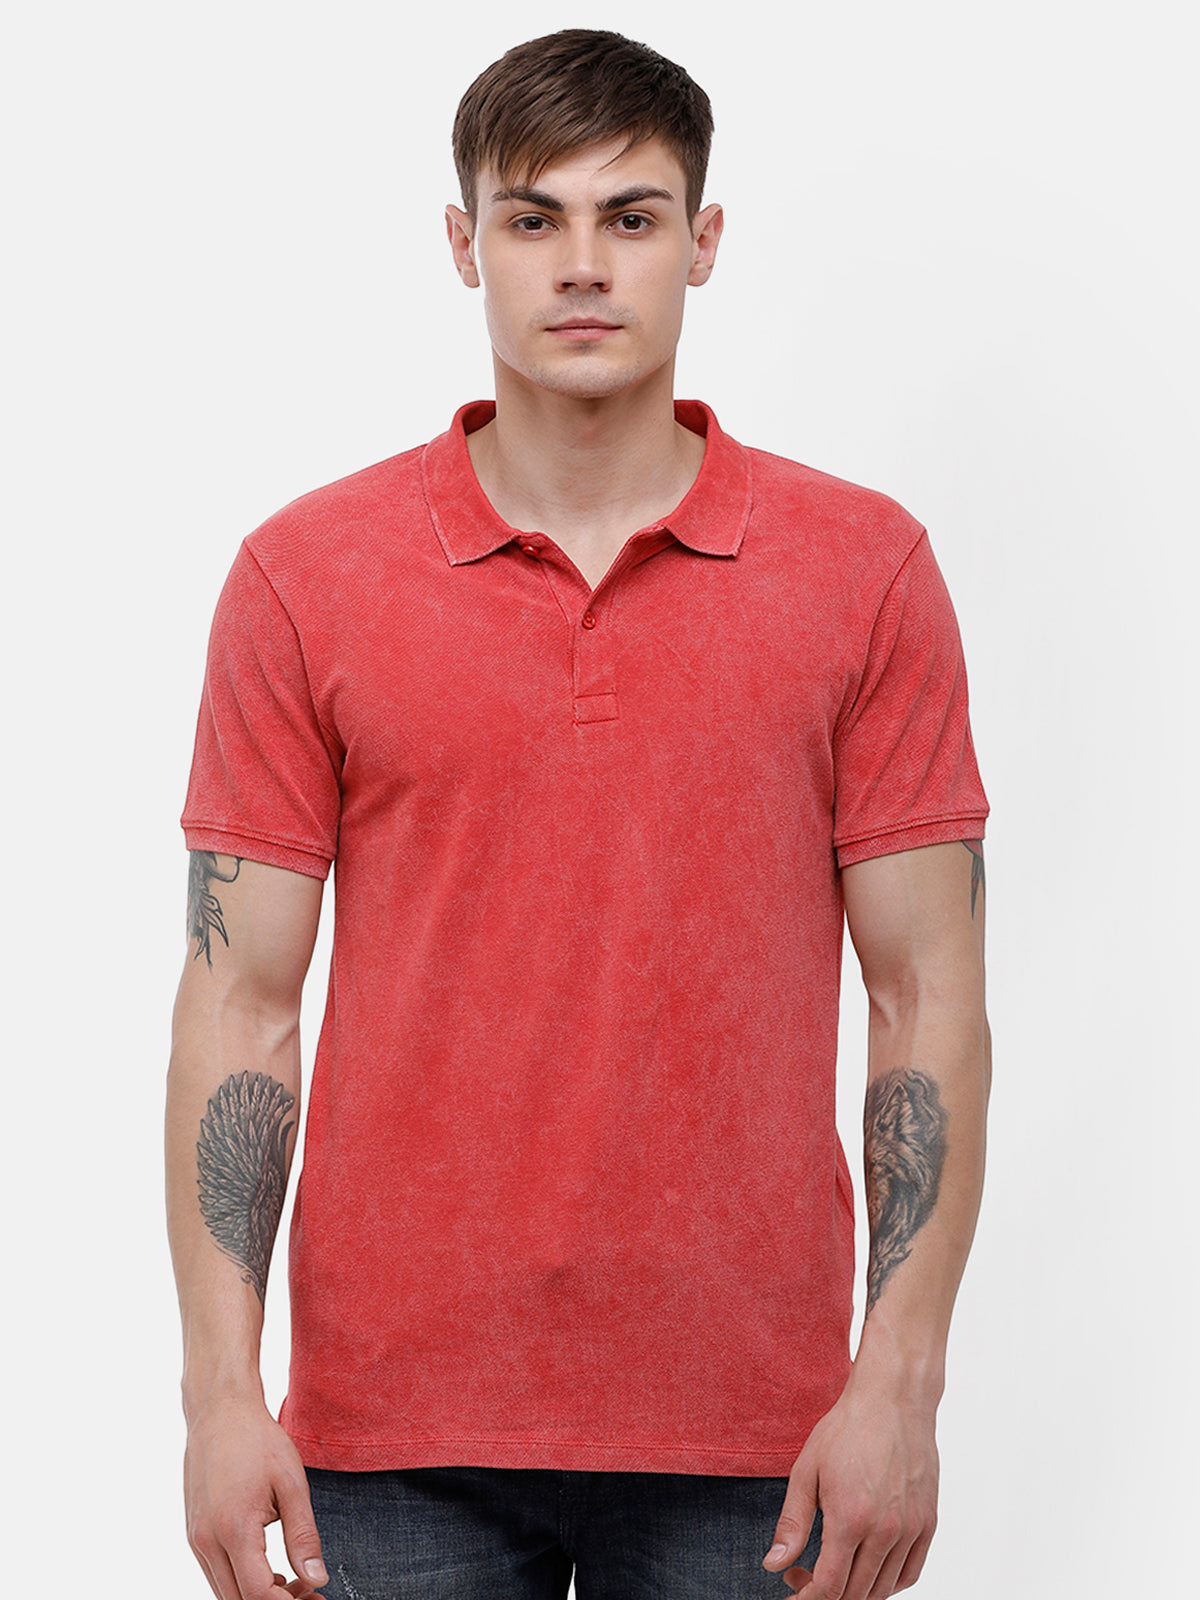 Men's Red polo, half sleeve T-shirt